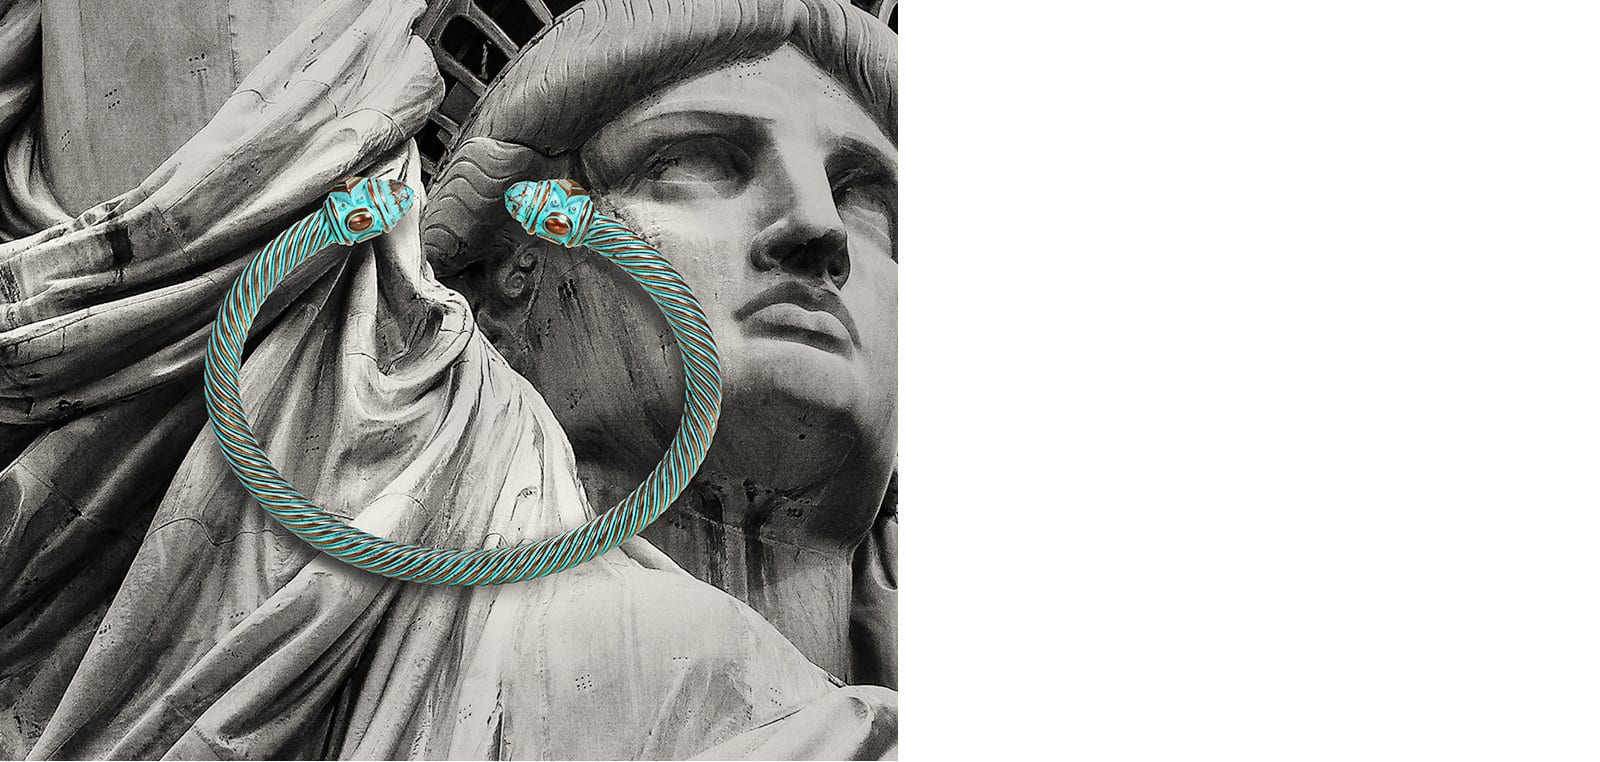 A David Yurman Renaissance Collection bracelet in copper with a green patina atop an image of the Statue of Liberty.